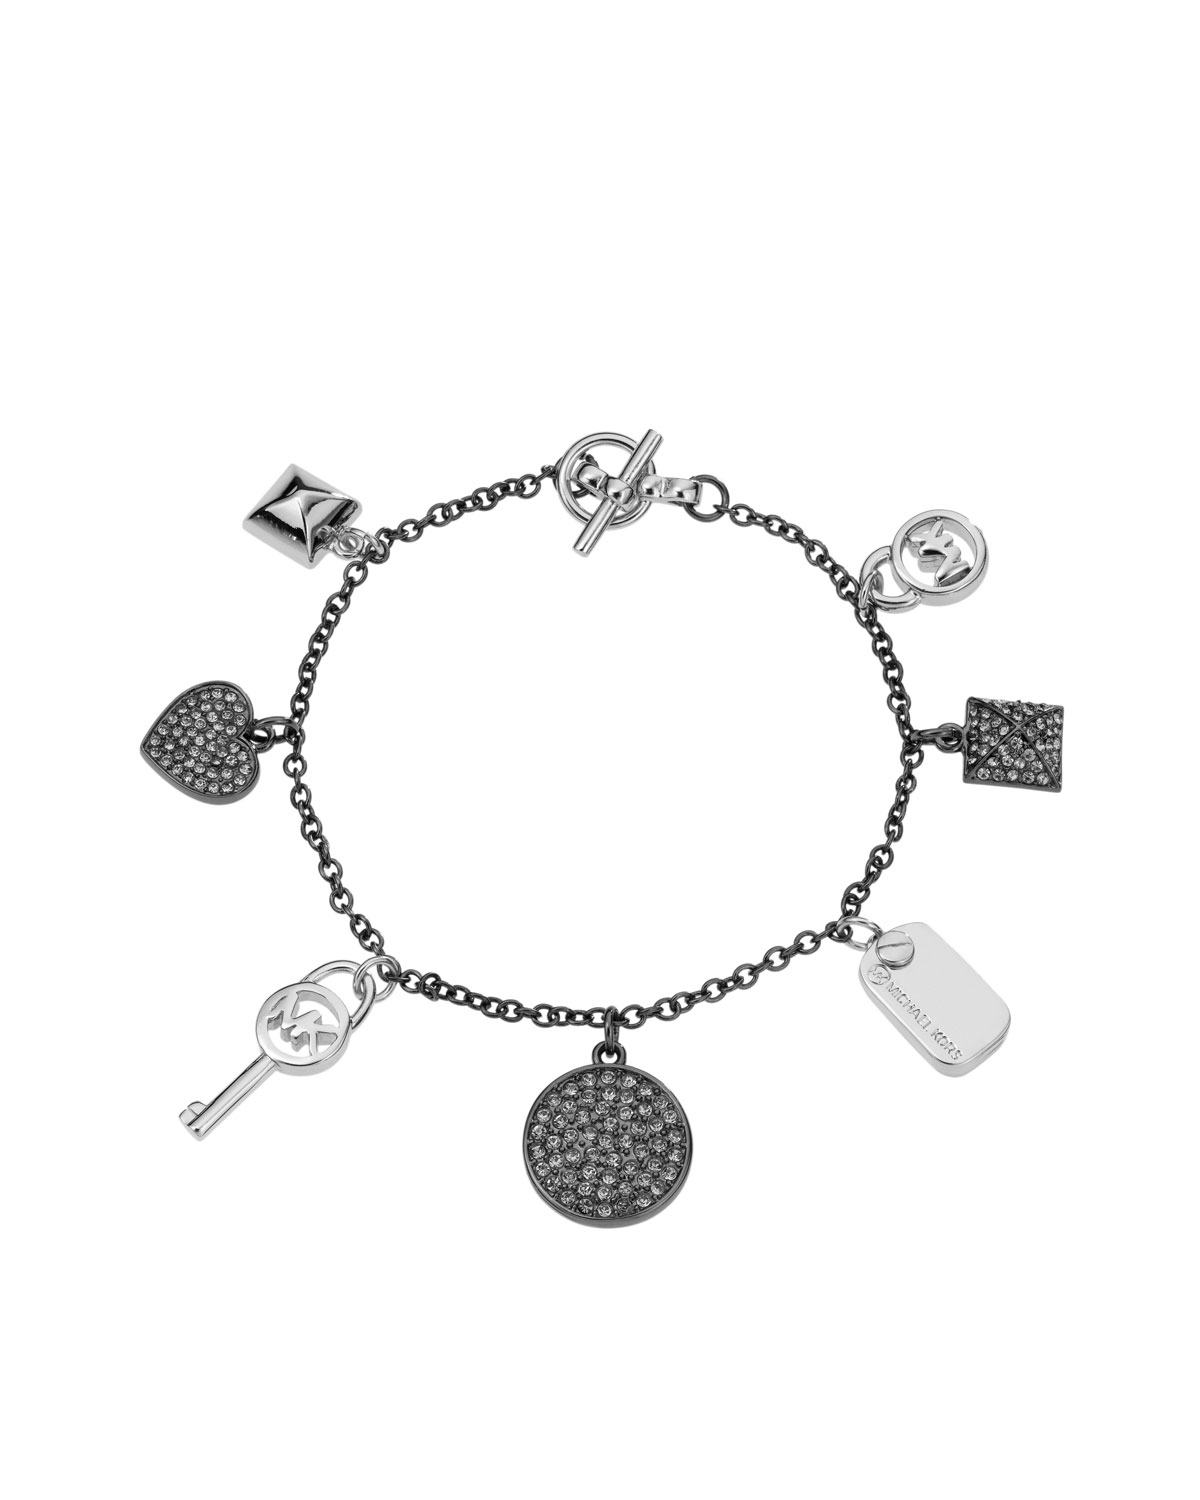 michael kors dainty charm bracelet silver color in silver